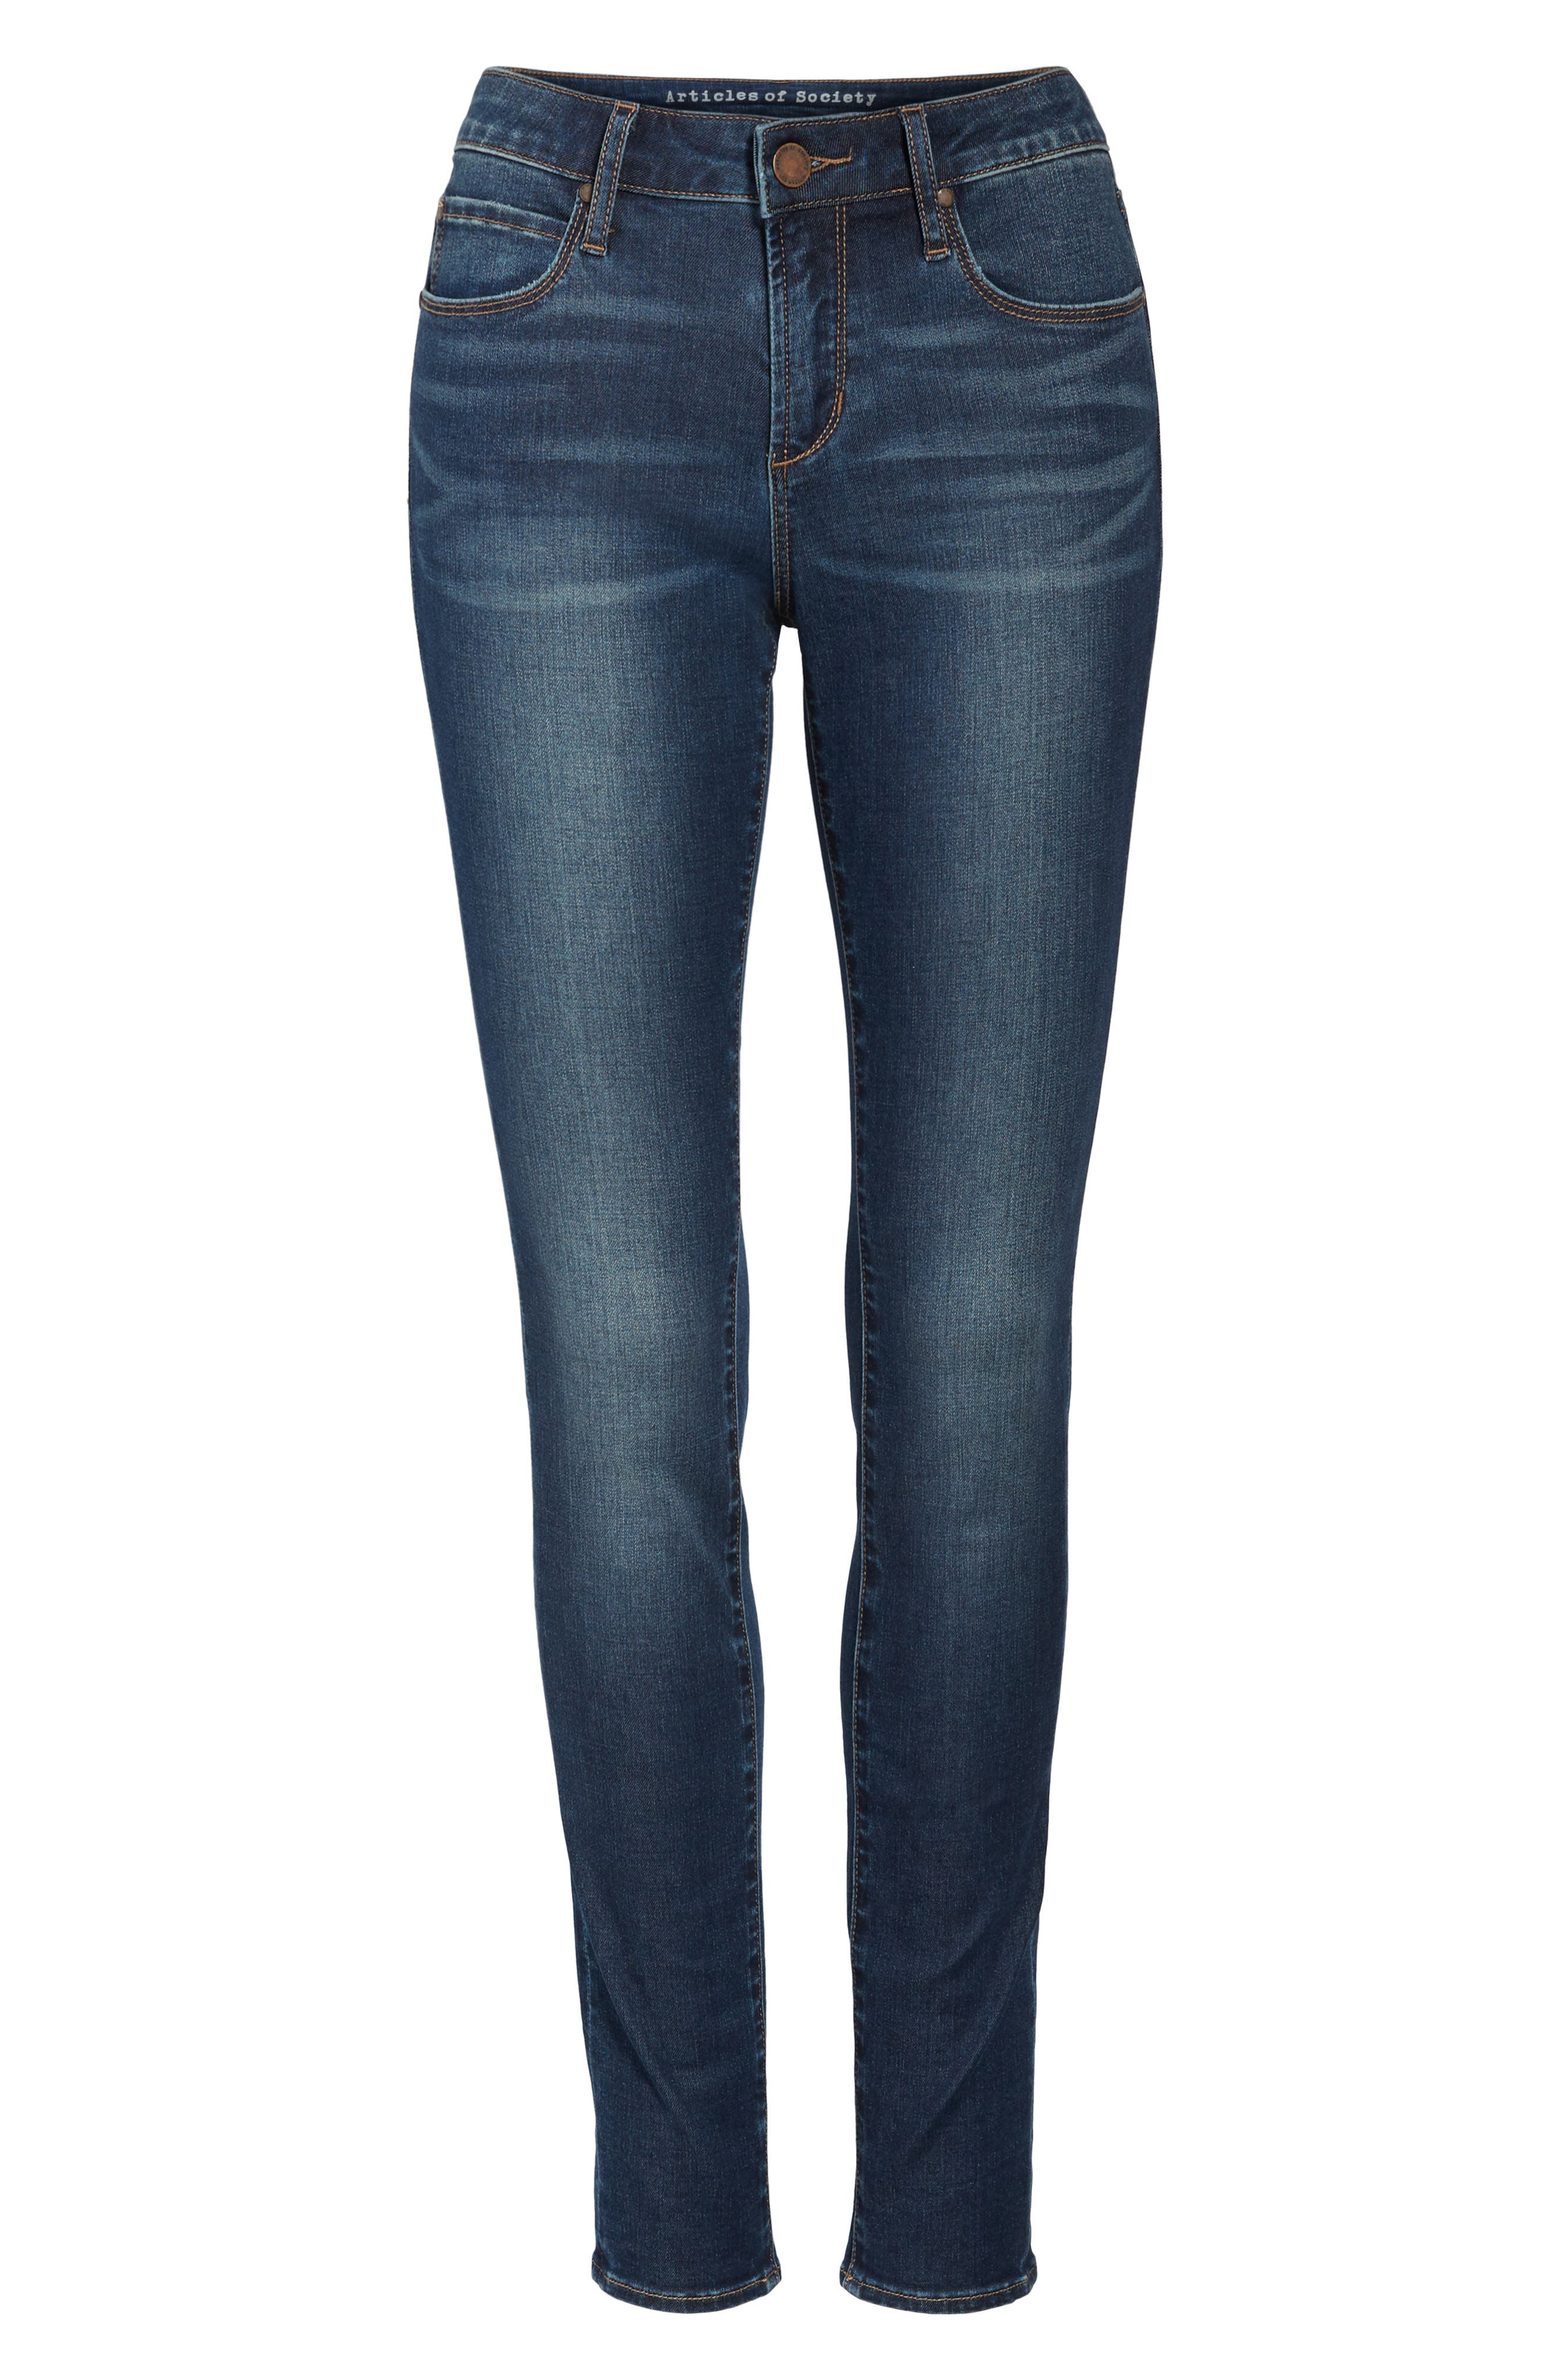 Melody Skinny Jeans,                             Alternate thumbnail 7, color,                             491